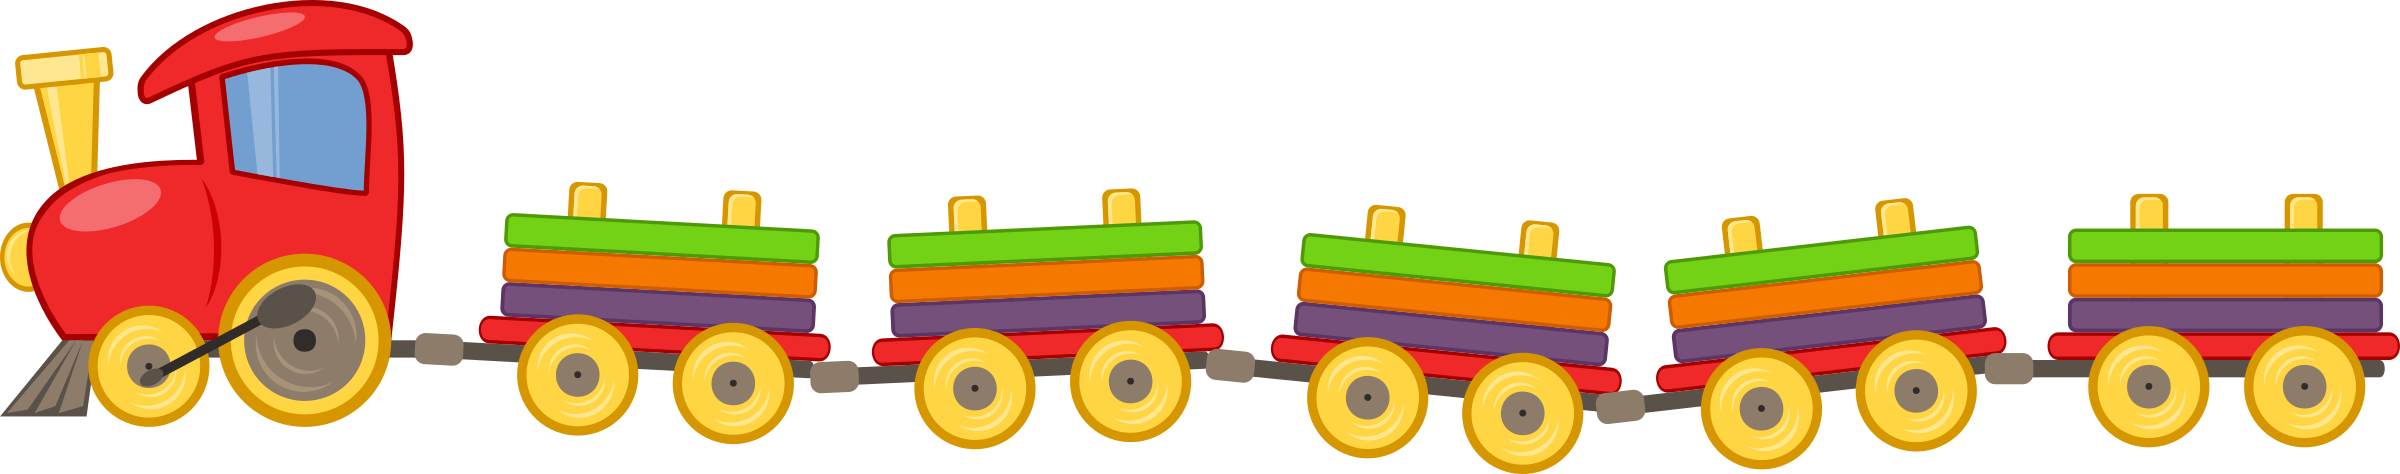 collection of train. Wagon clipart waggon